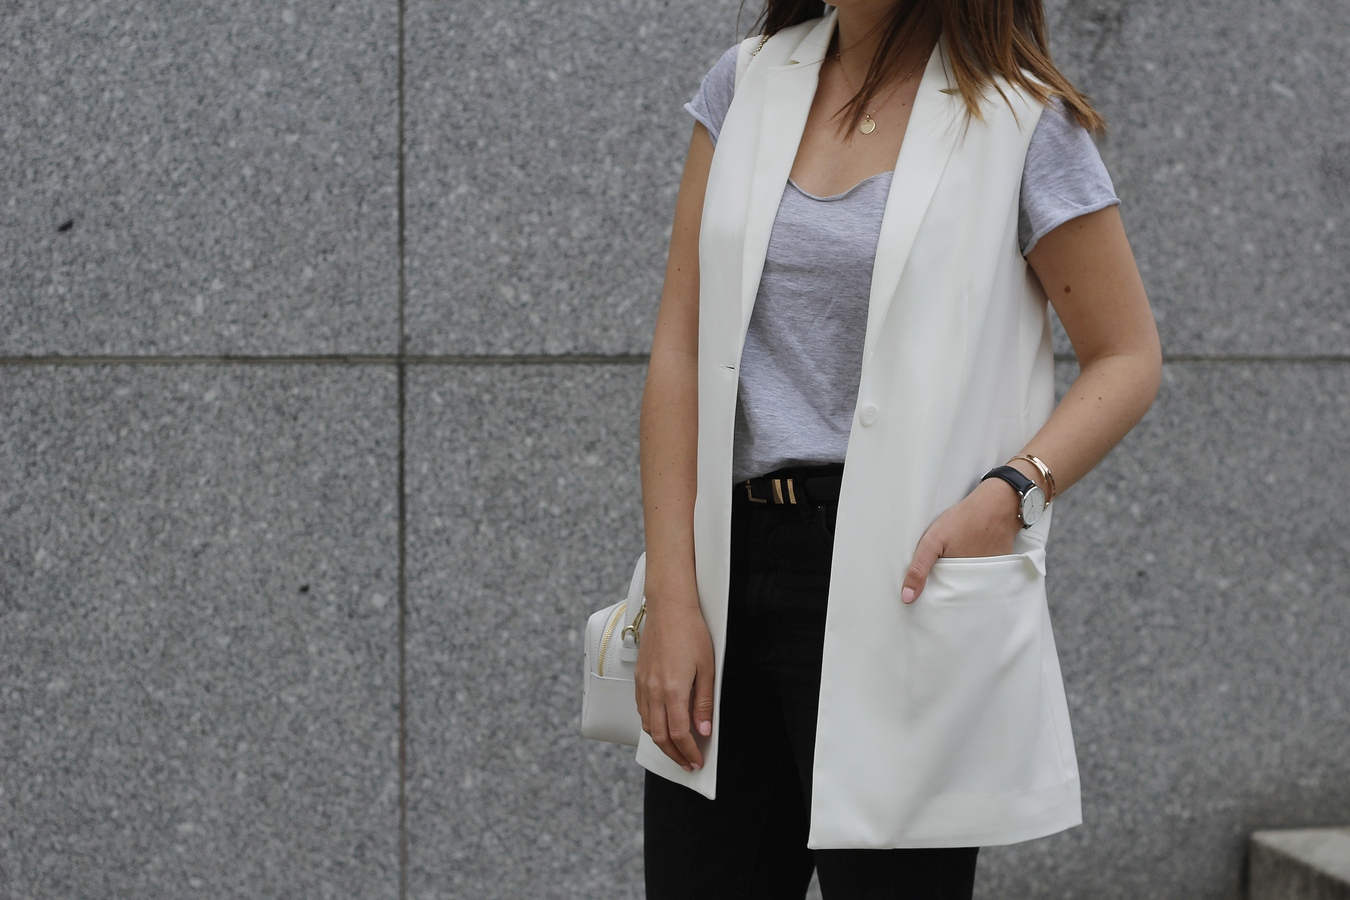 Blog mode femme Paris - Du style, Madame - blazer long sans manche - blanc